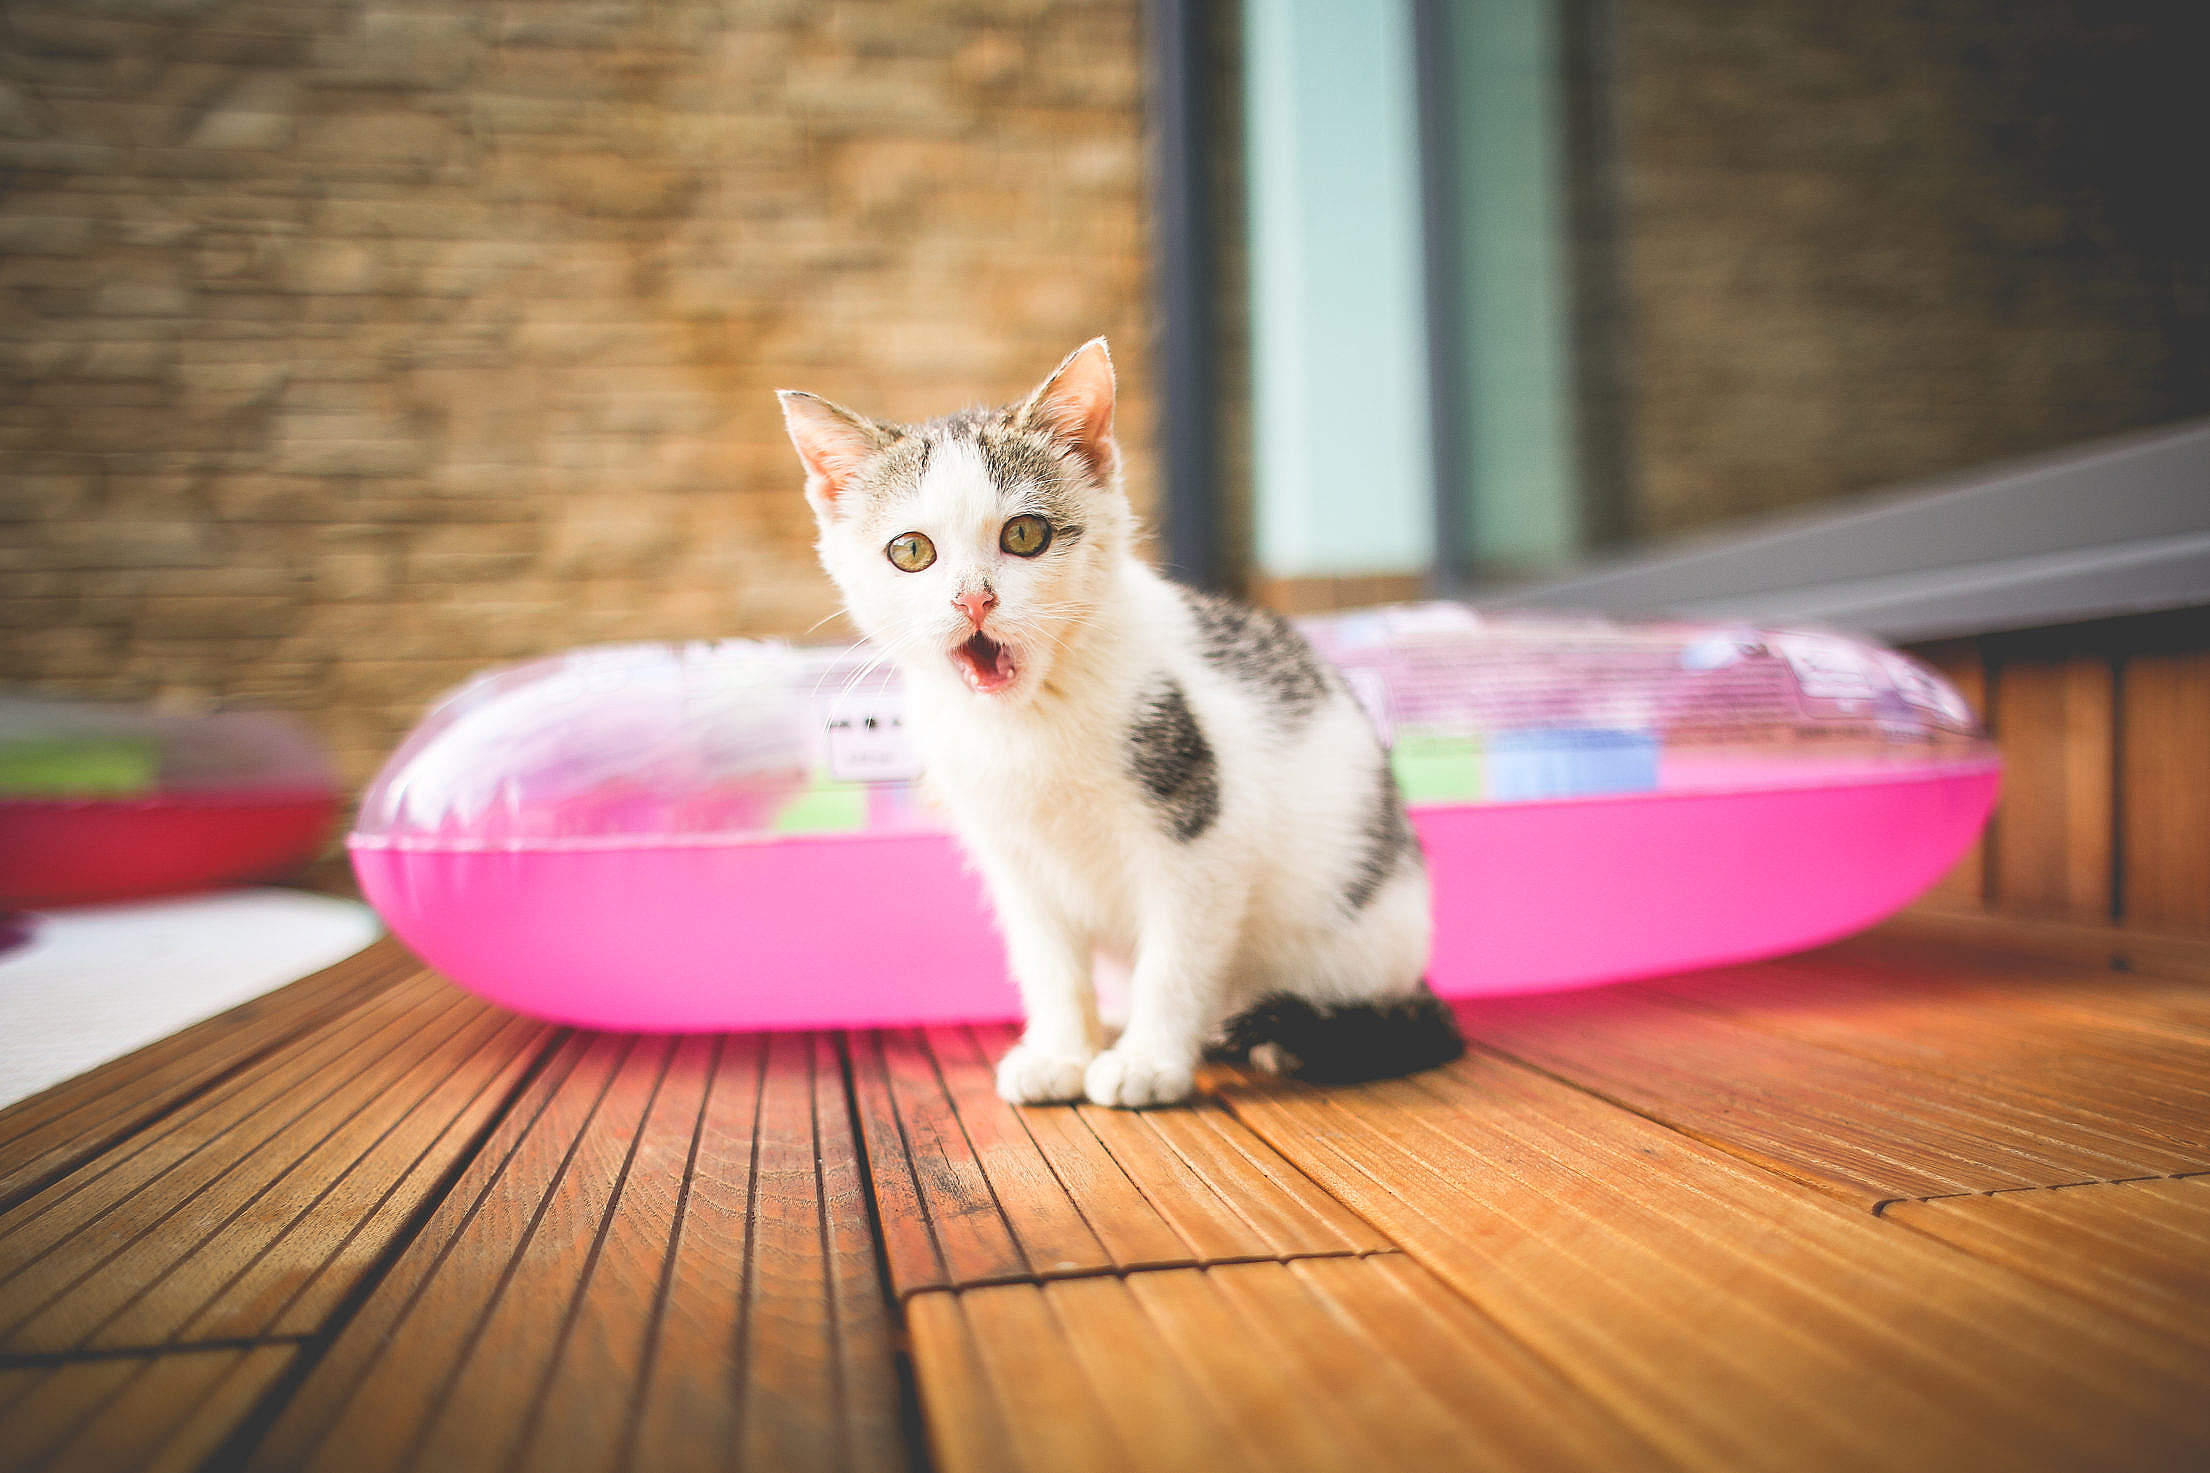 One Little Angry Cat Free Stock Photo